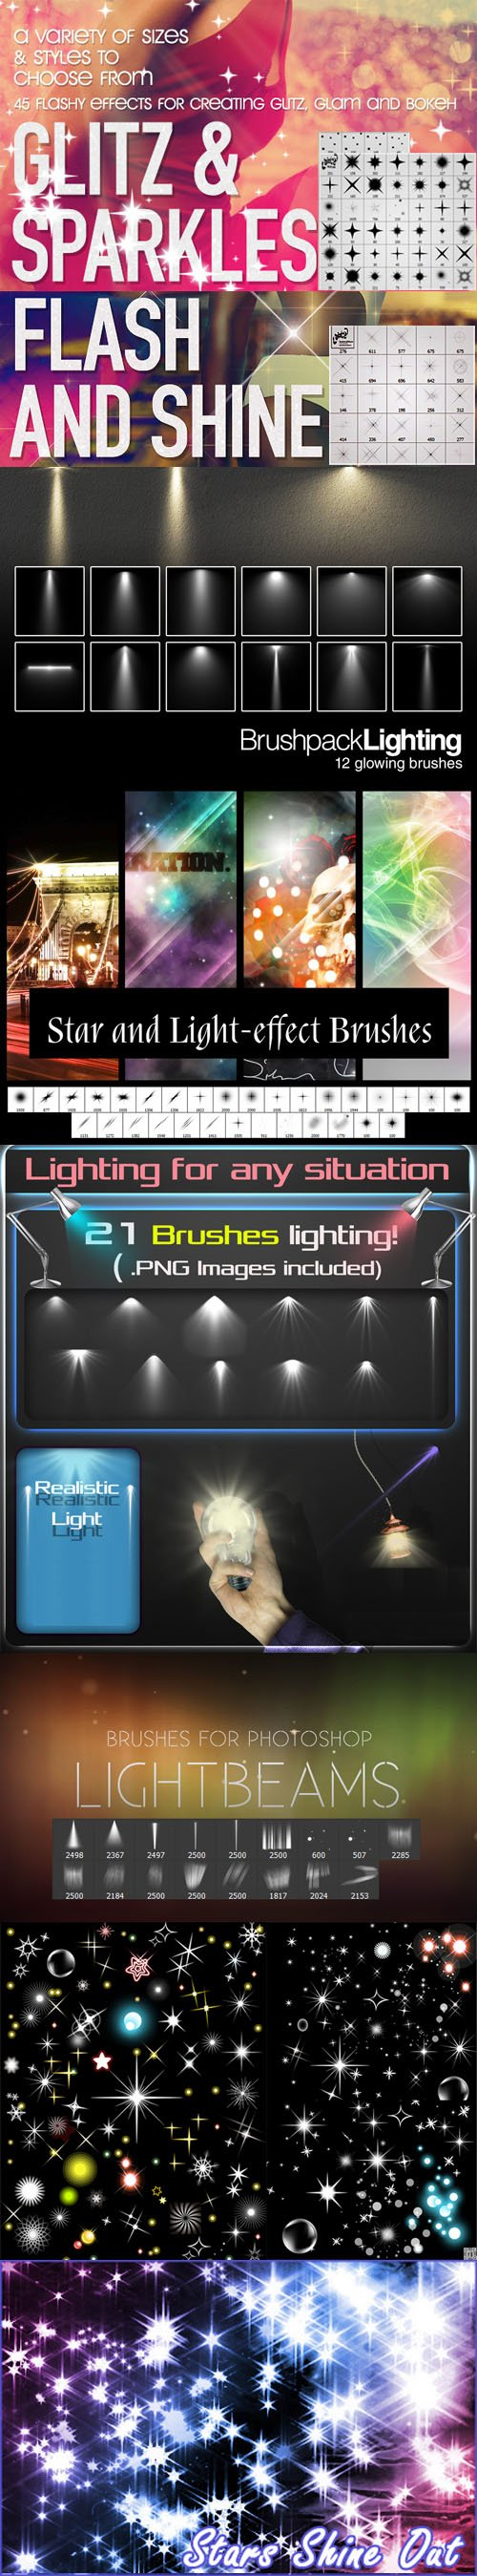 Stars & Flashy Lighting Brushes Pack for Photoshop